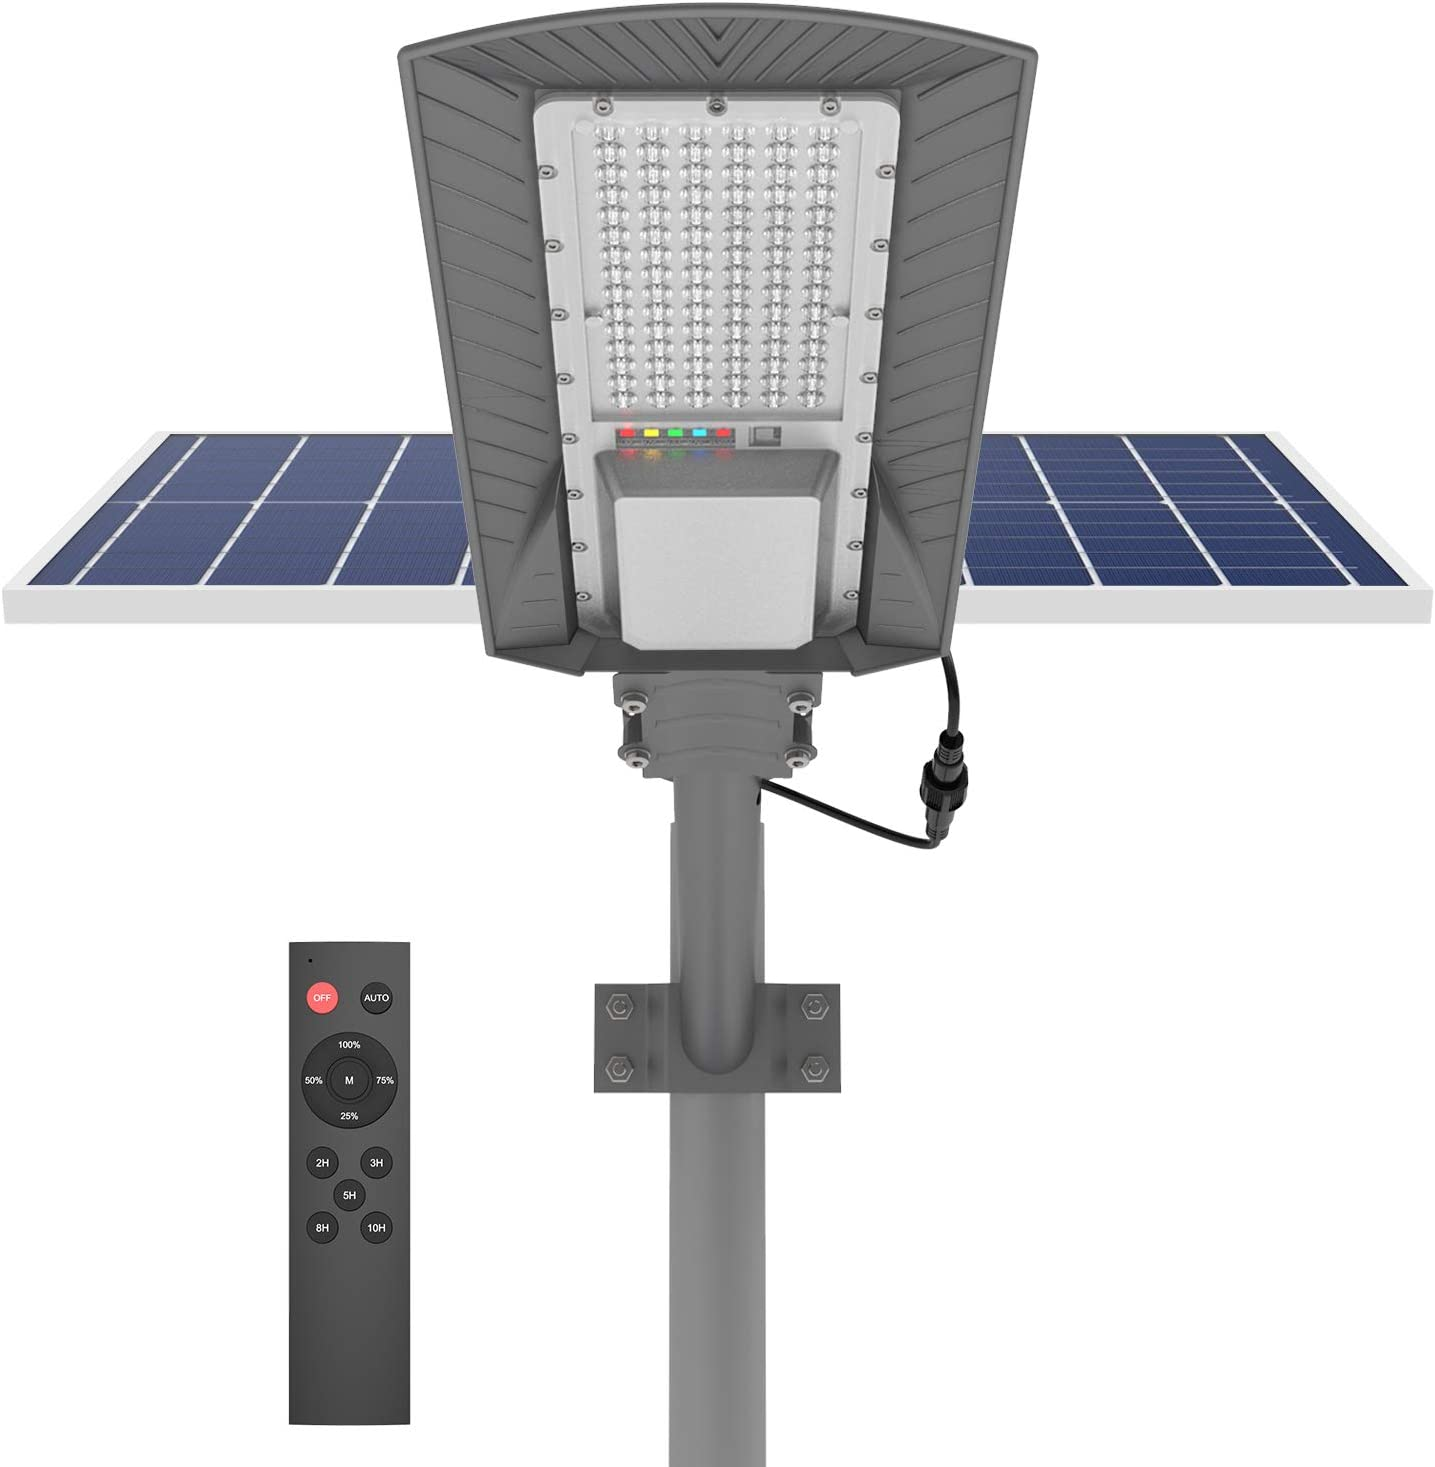 Hyperaza 150w Led Solar Street Lights, Solar Flood Lights Outdoor Dusk to Dawn with Remote Control, 9600 Lumens Waterproof Solar Security Light for Garden, Pathway (Mounting Bracket Included)